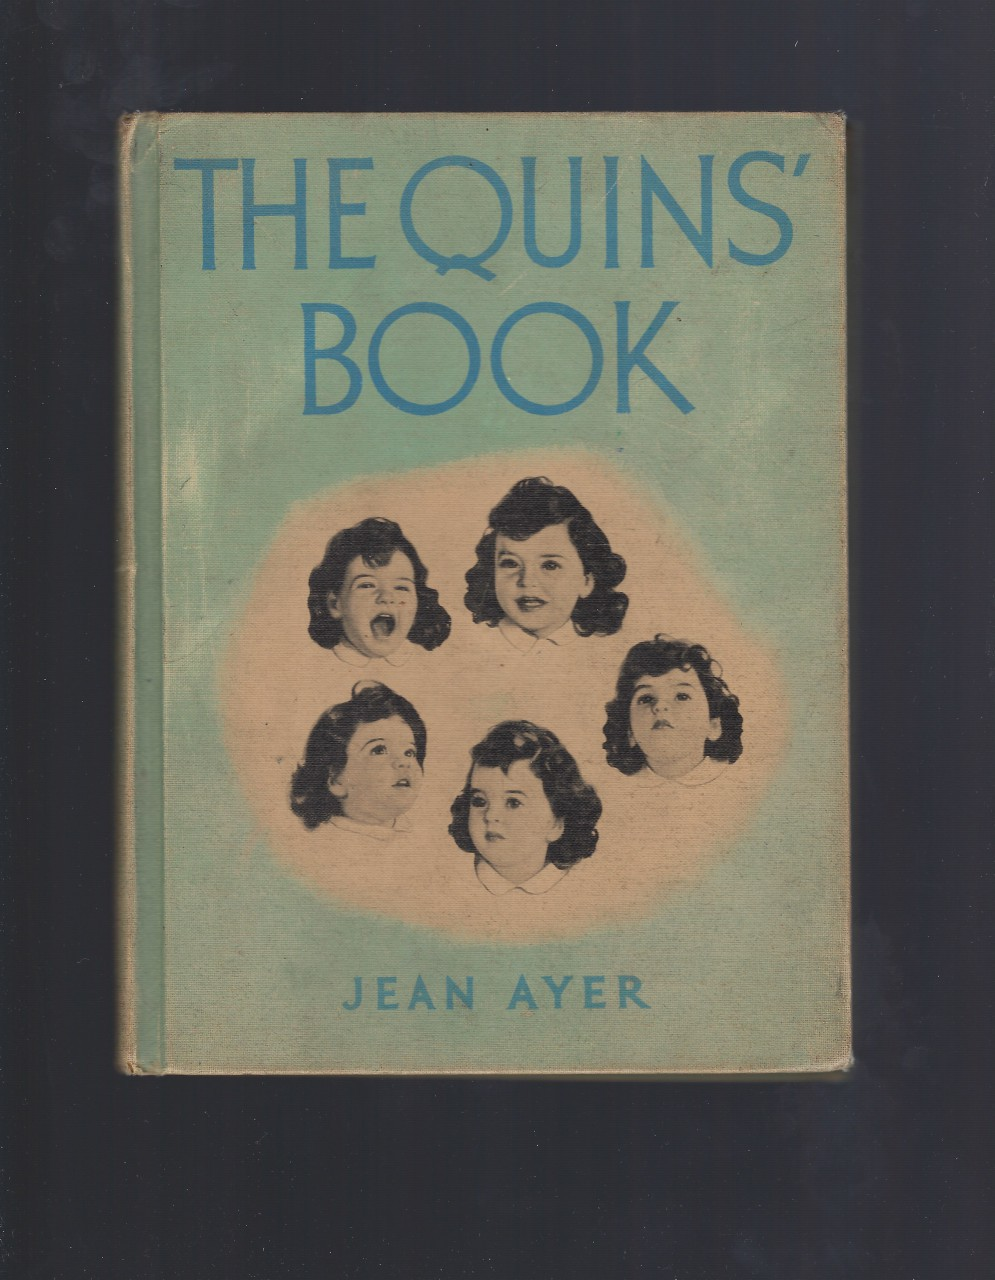 The Quins' Book (Dionne Quintuplets) 1937, Jean Ayer